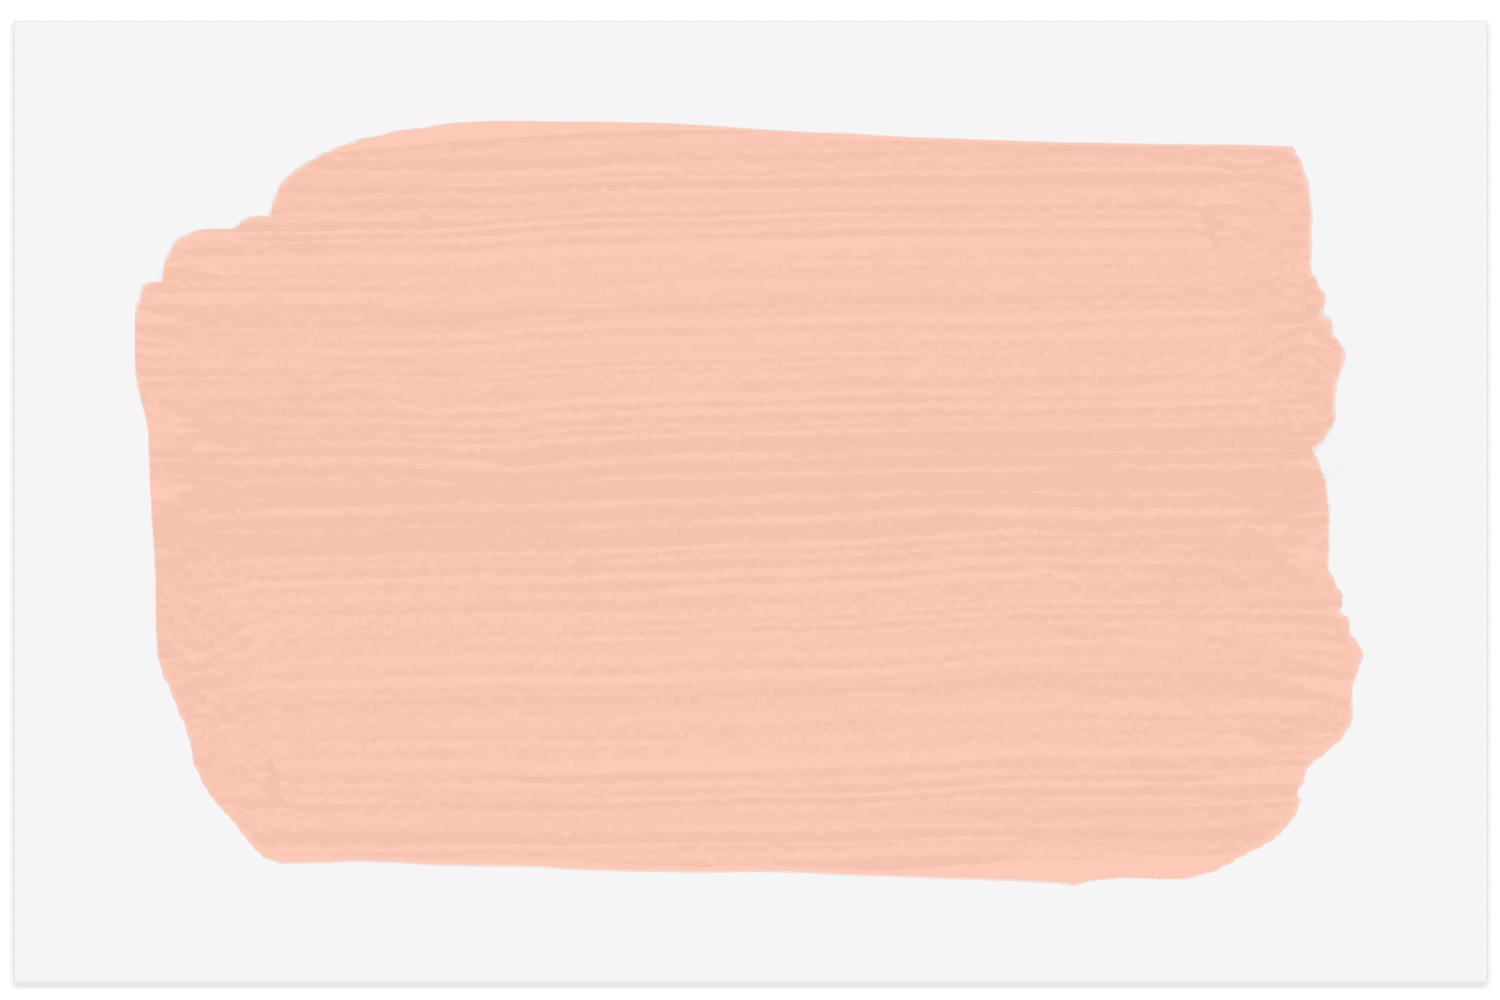 Clare paint swatch in Pop